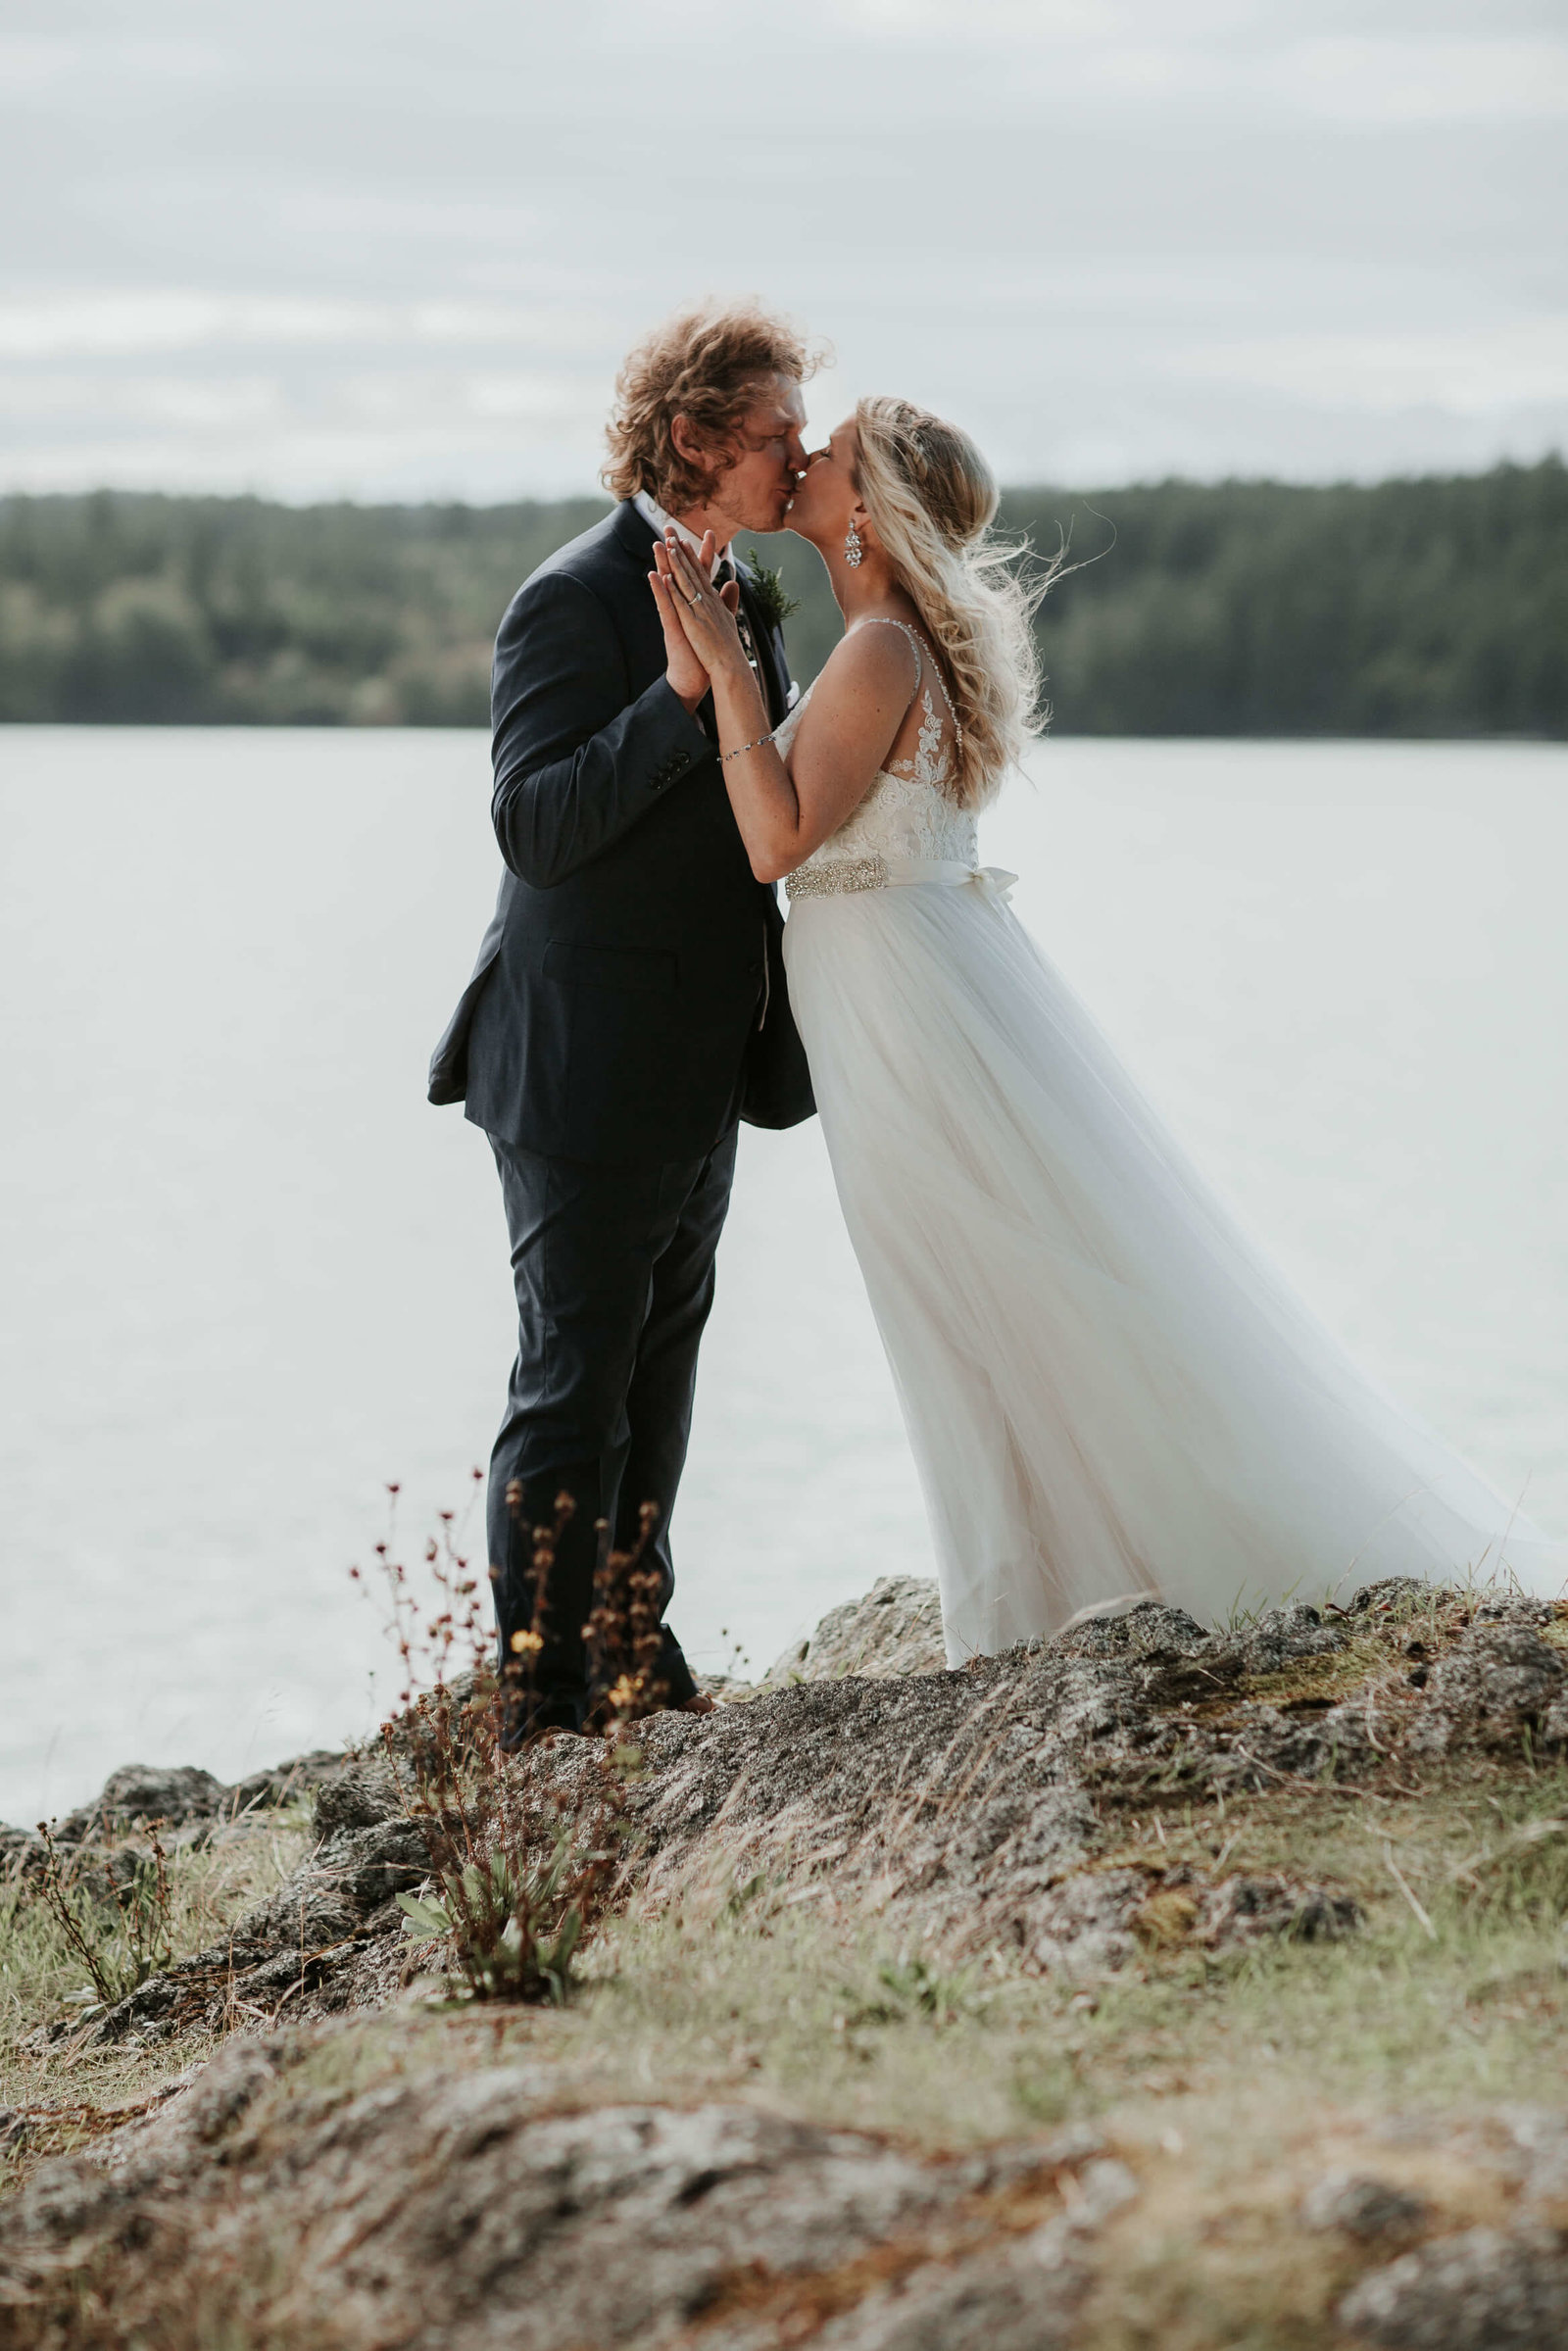 Orcas-island-wedding-katherine&robin-adina-preston-weddings-9-22-2018-APW-H889